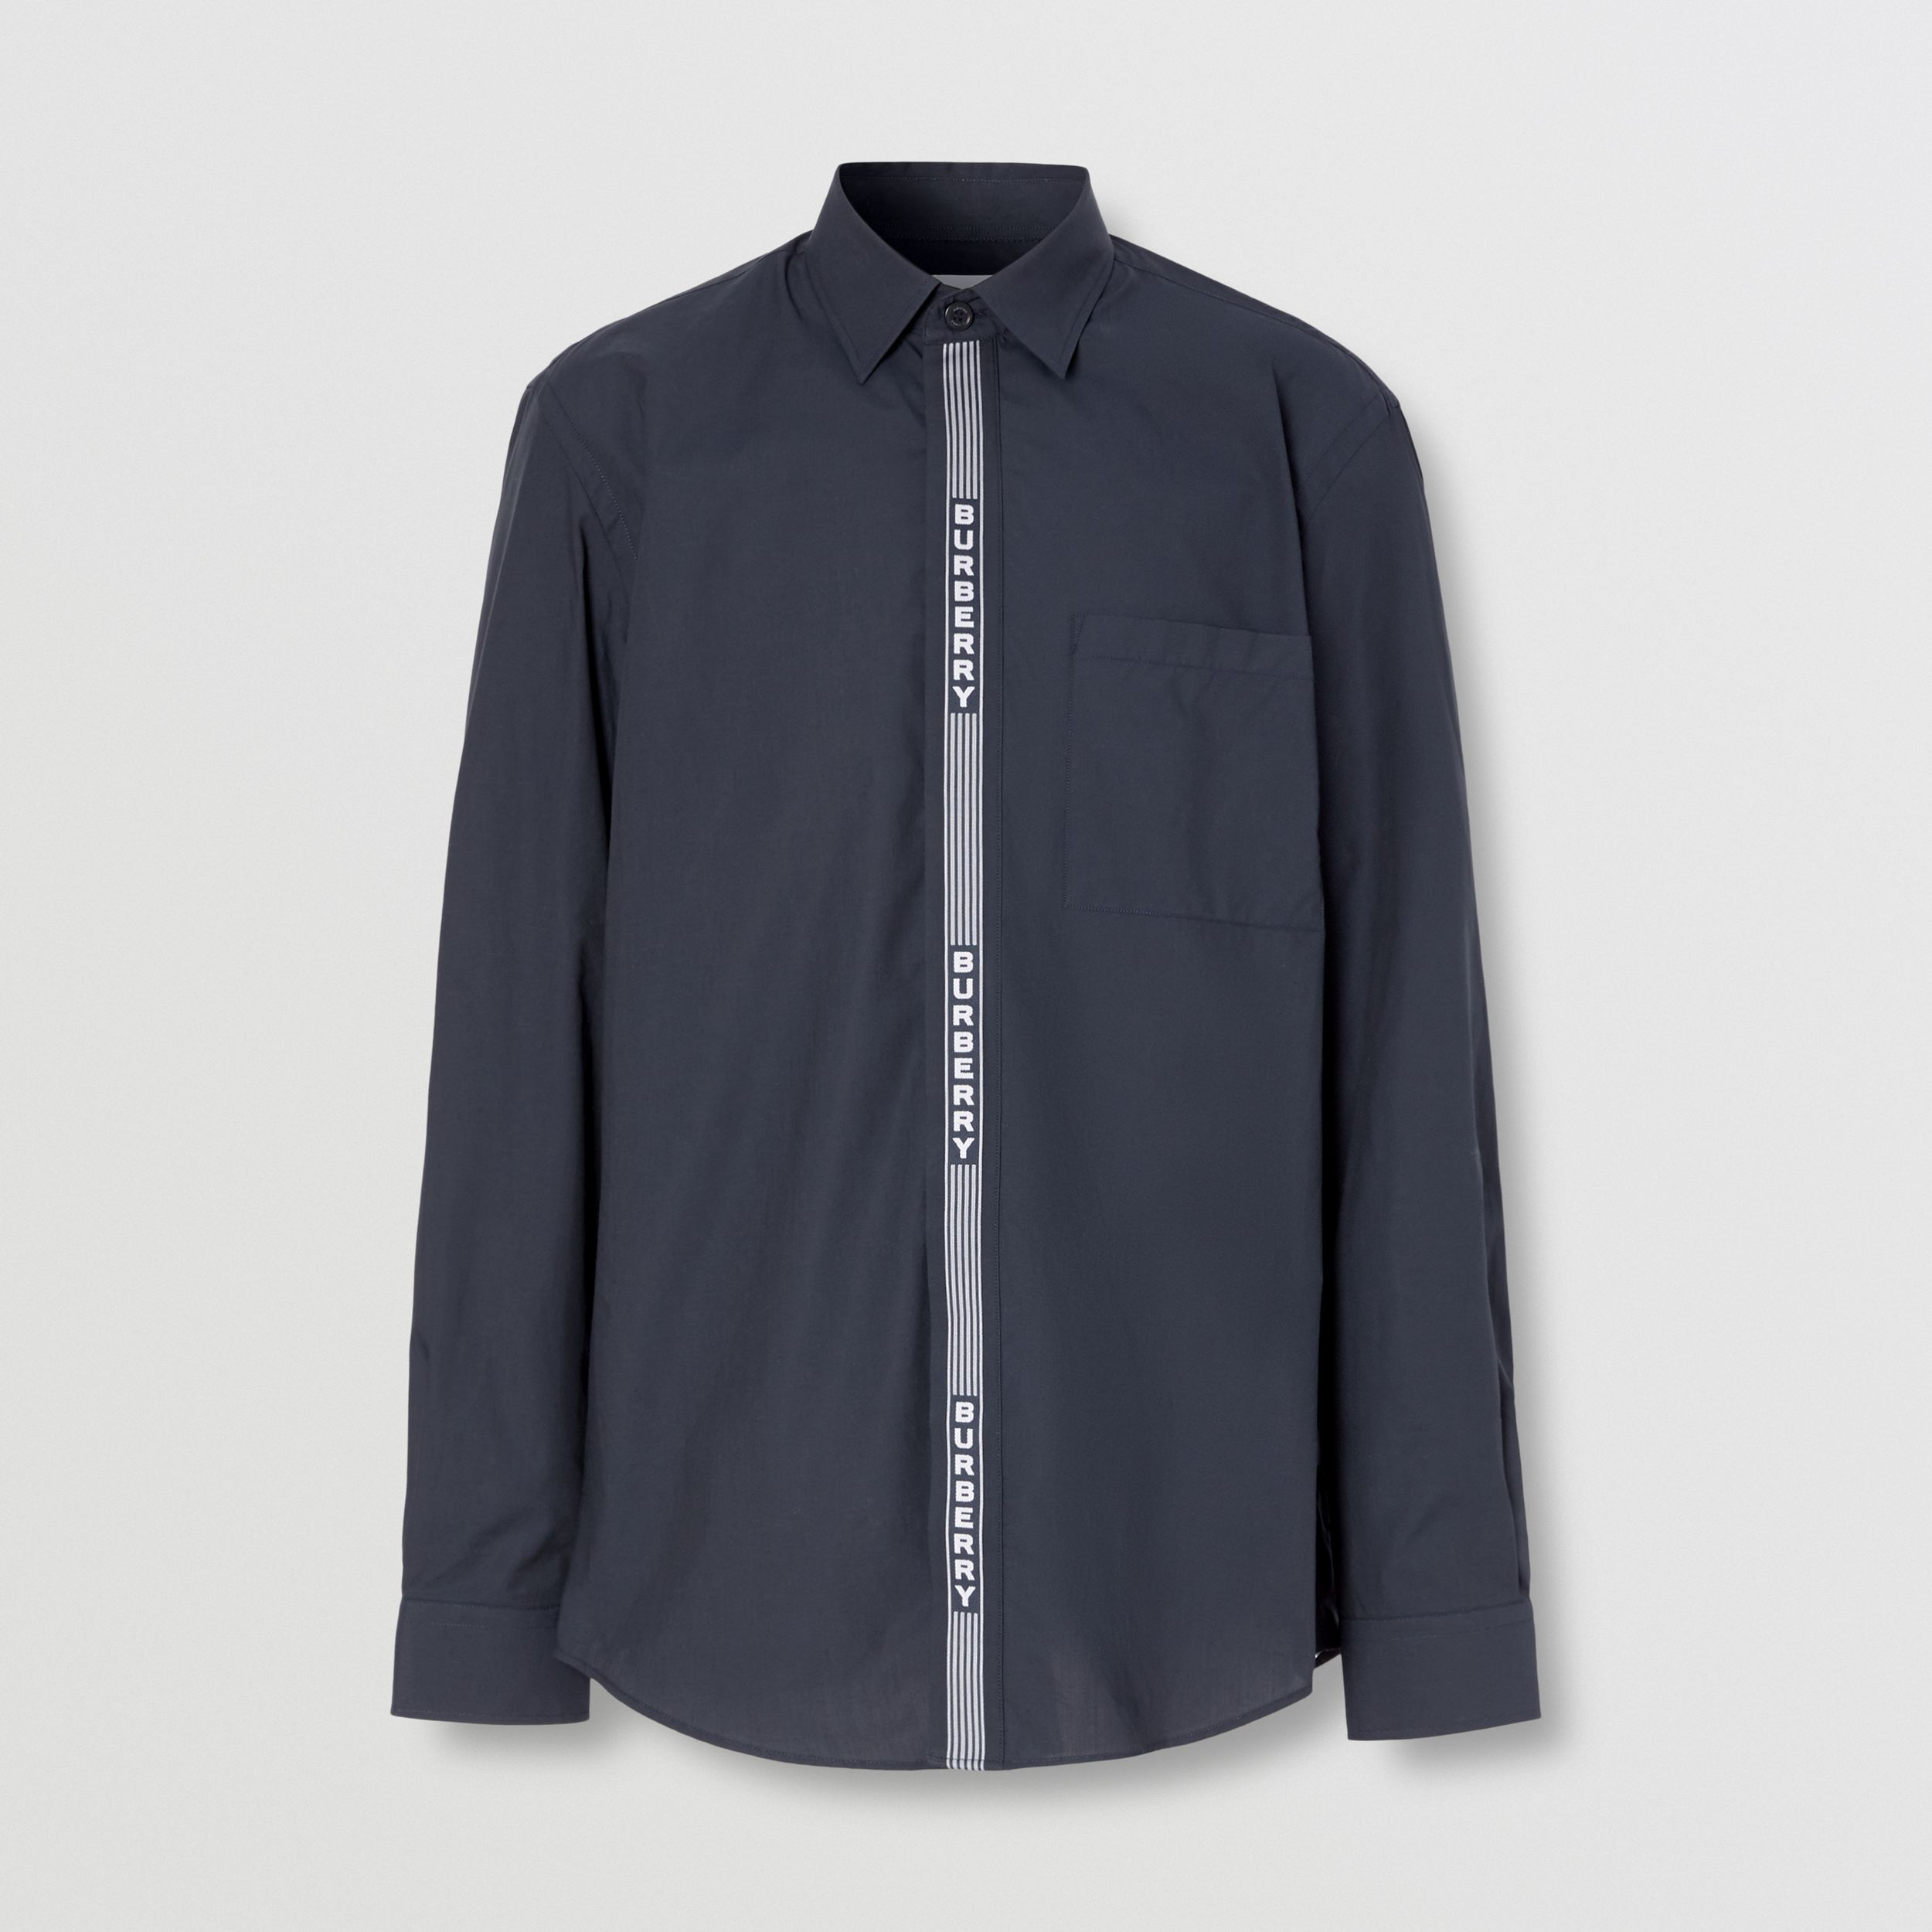 Logo Tape Cotton Shirt in Navy/white - Men | Burberry Hong Kong S.A.R. - 4